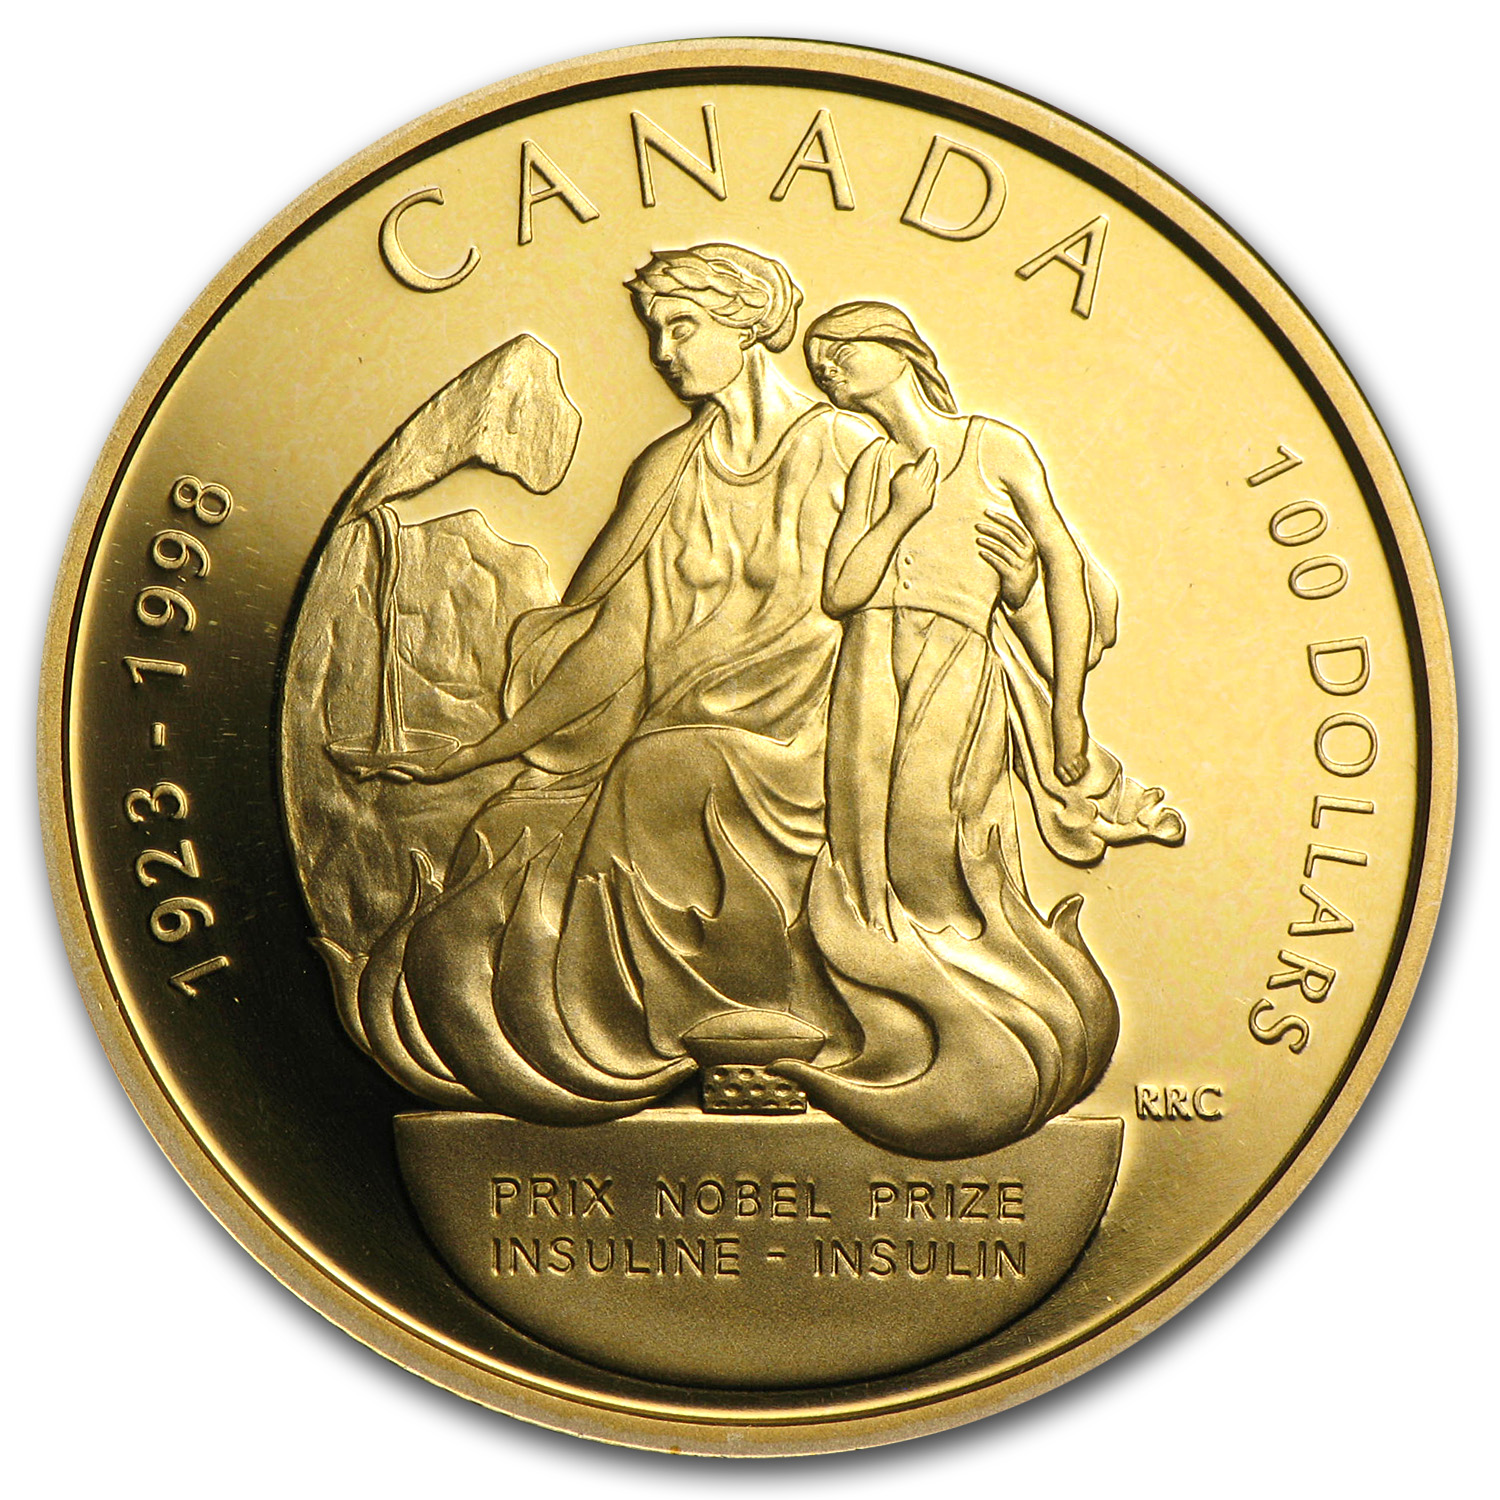 1998 Canada 1/4 oz Proof Gold $100 Nobel Prize Insulin